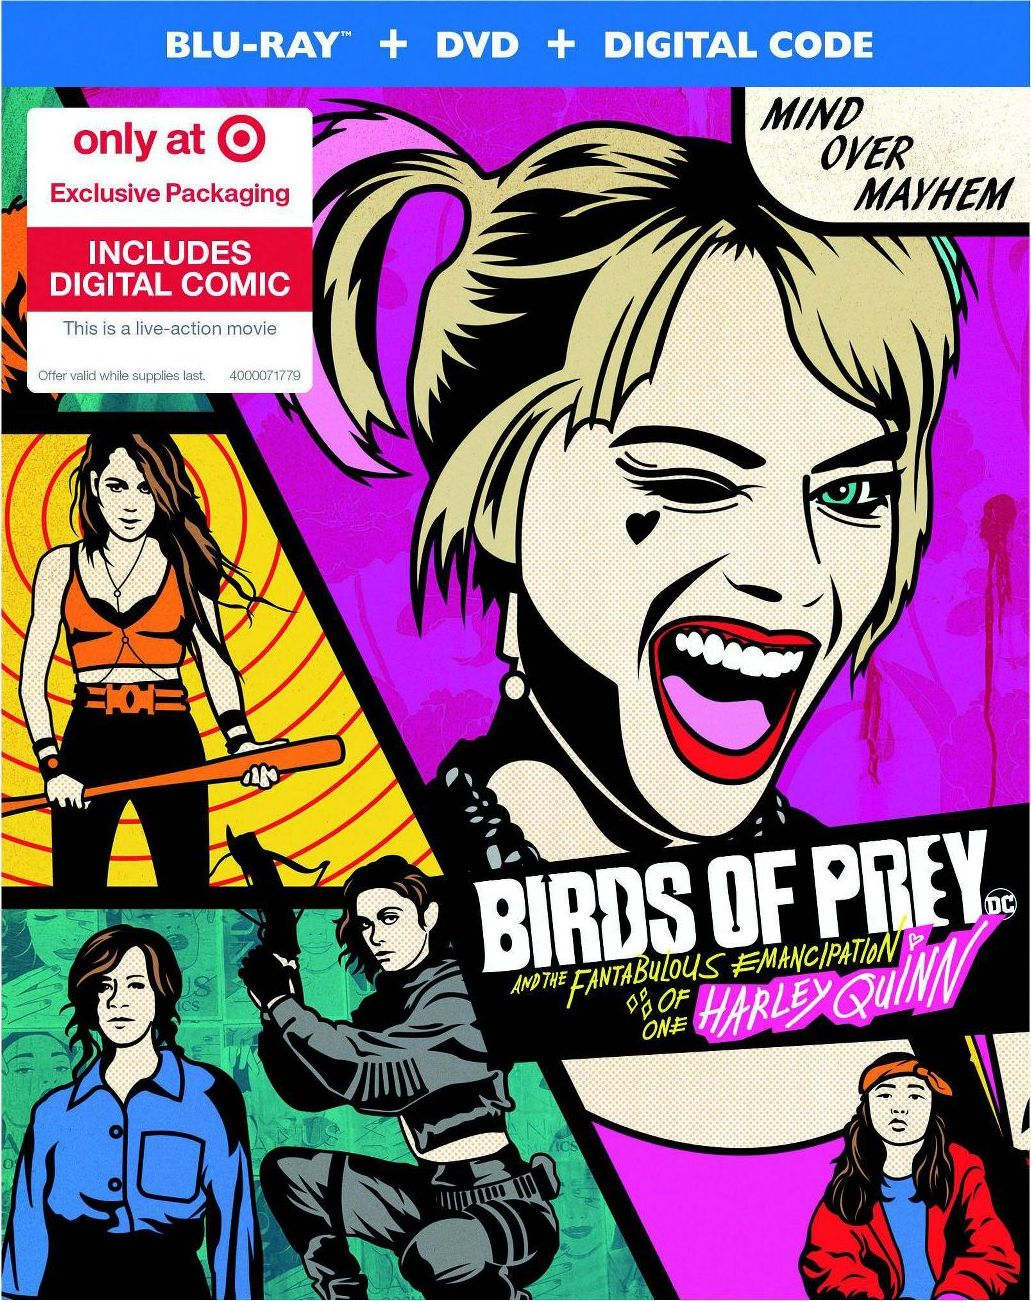 Birds Of Prey And The Fantabulous Emancipation Of One Harley Quinn Blu Ray Release Date May 12 2020 Target Exclusive